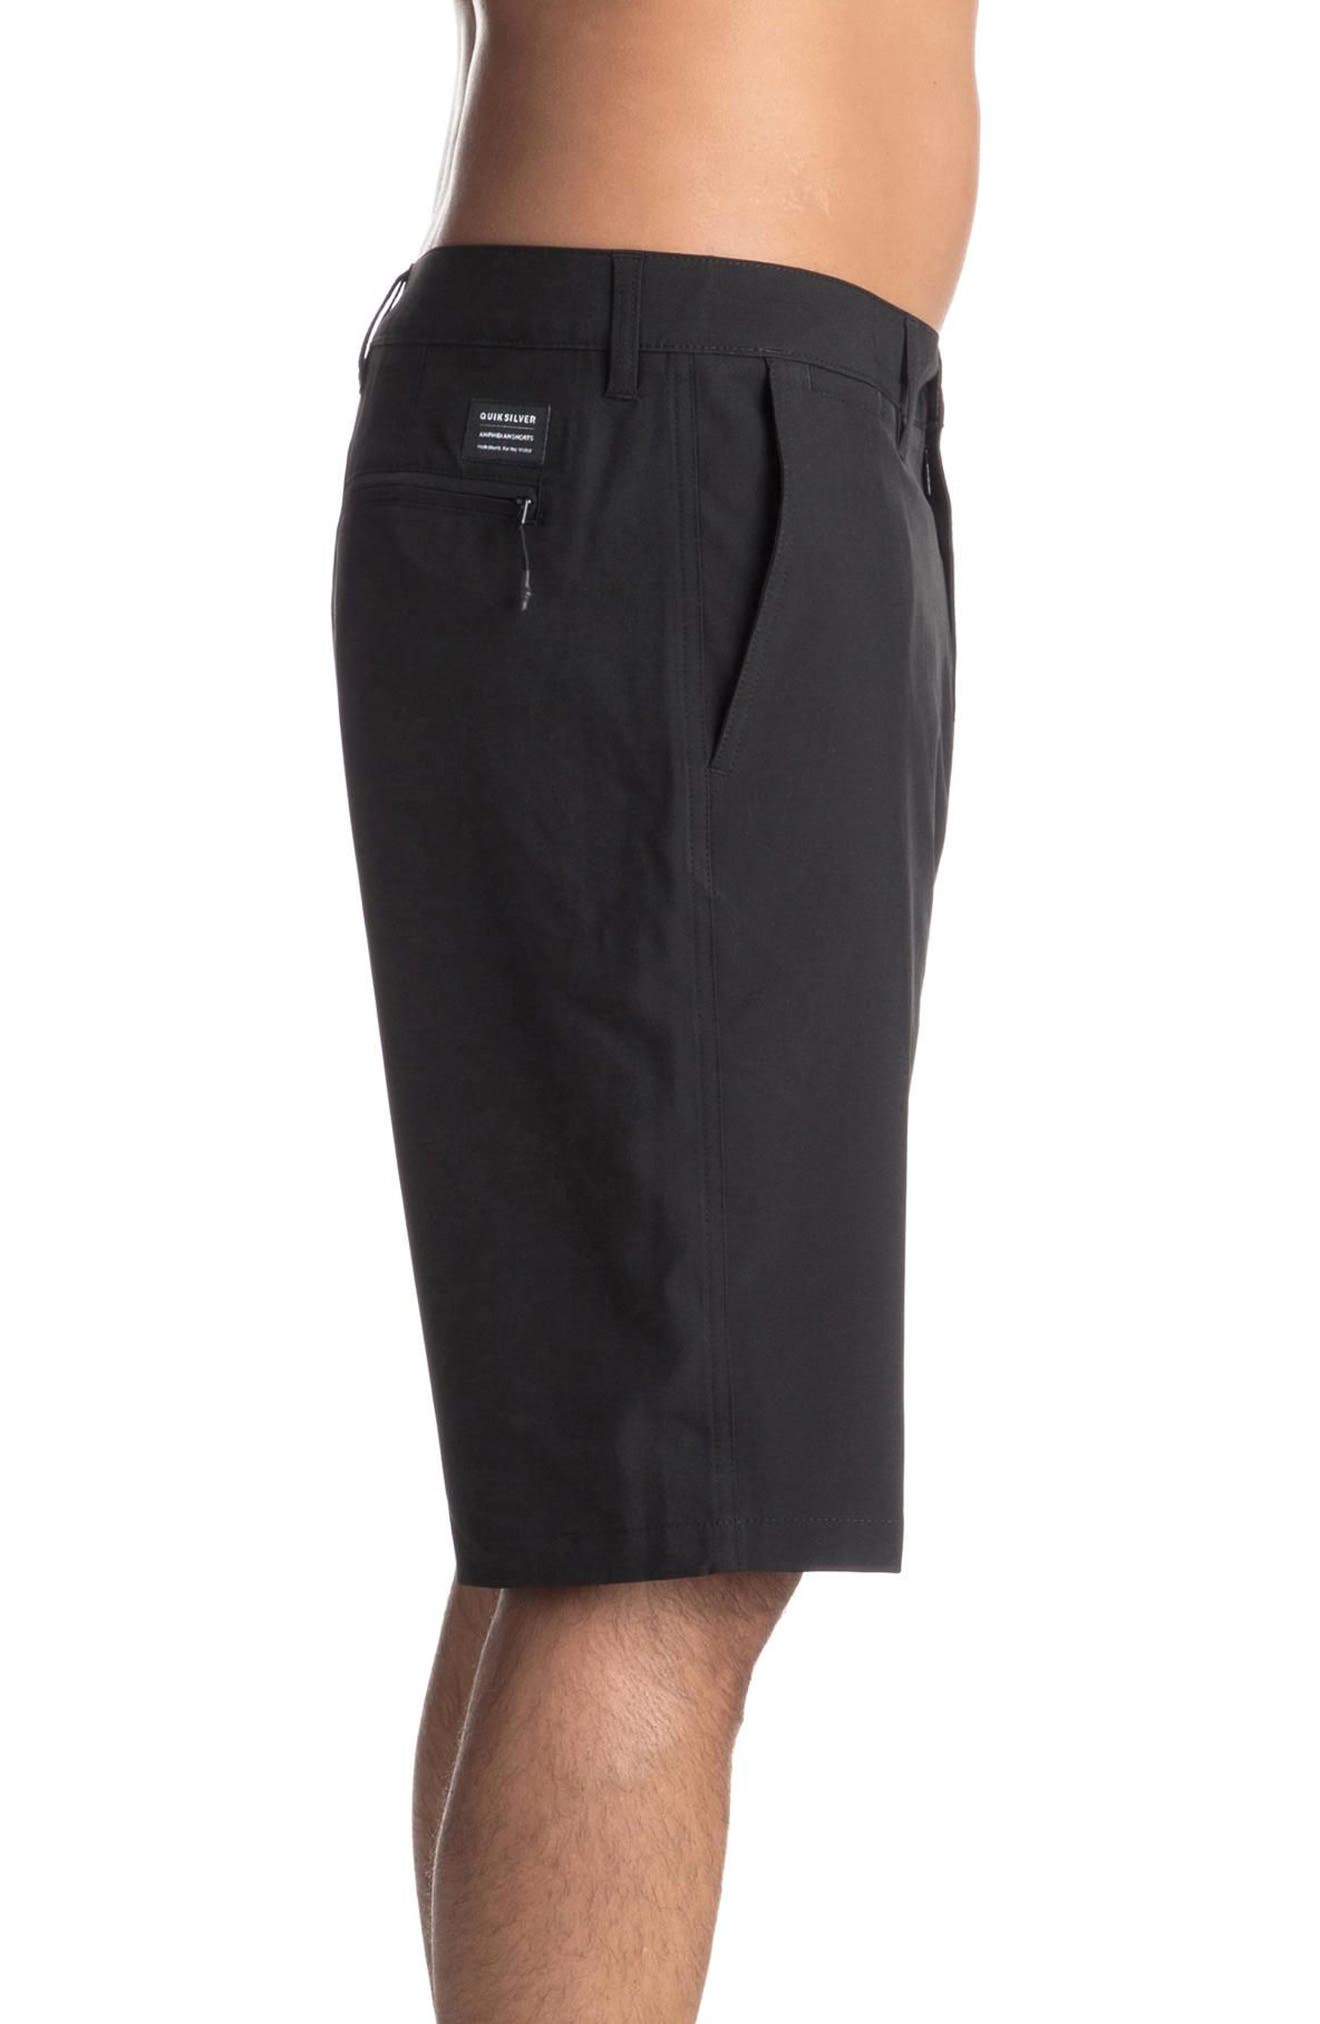 Union Amphibian Shorts,                             Alternate thumbnail 3, color,                             Black